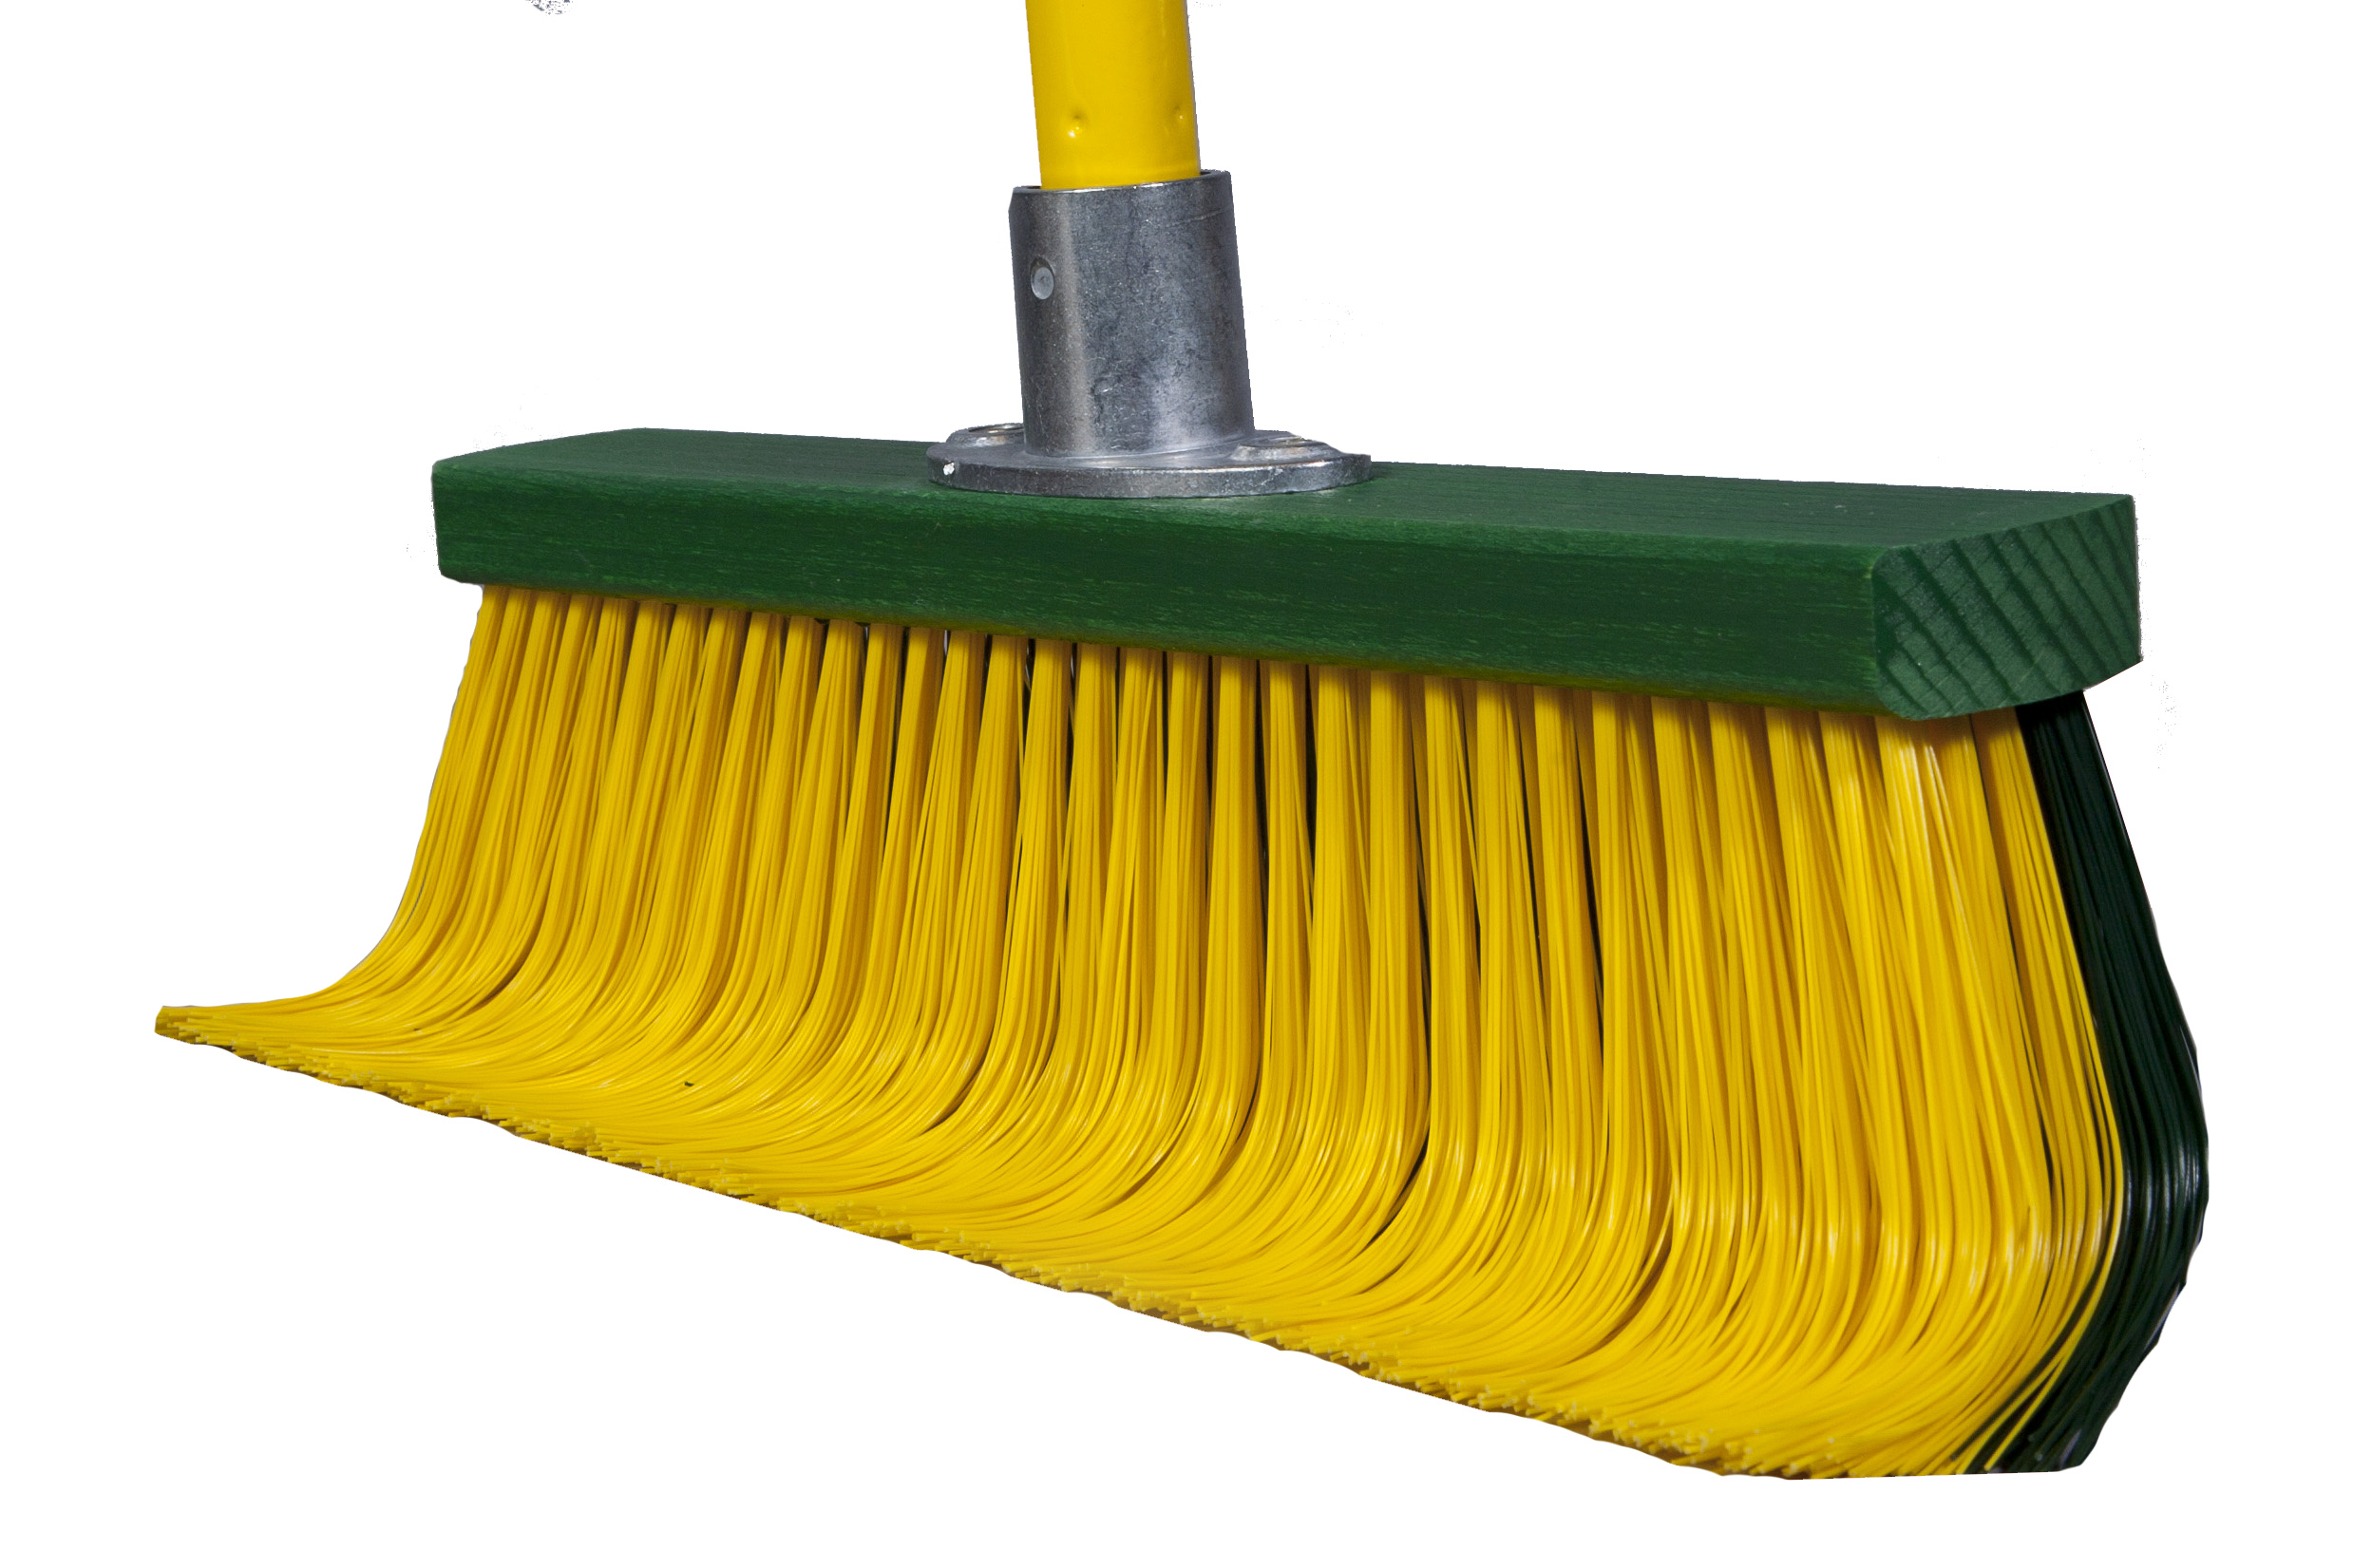 broom curved synthetic turf cleaning